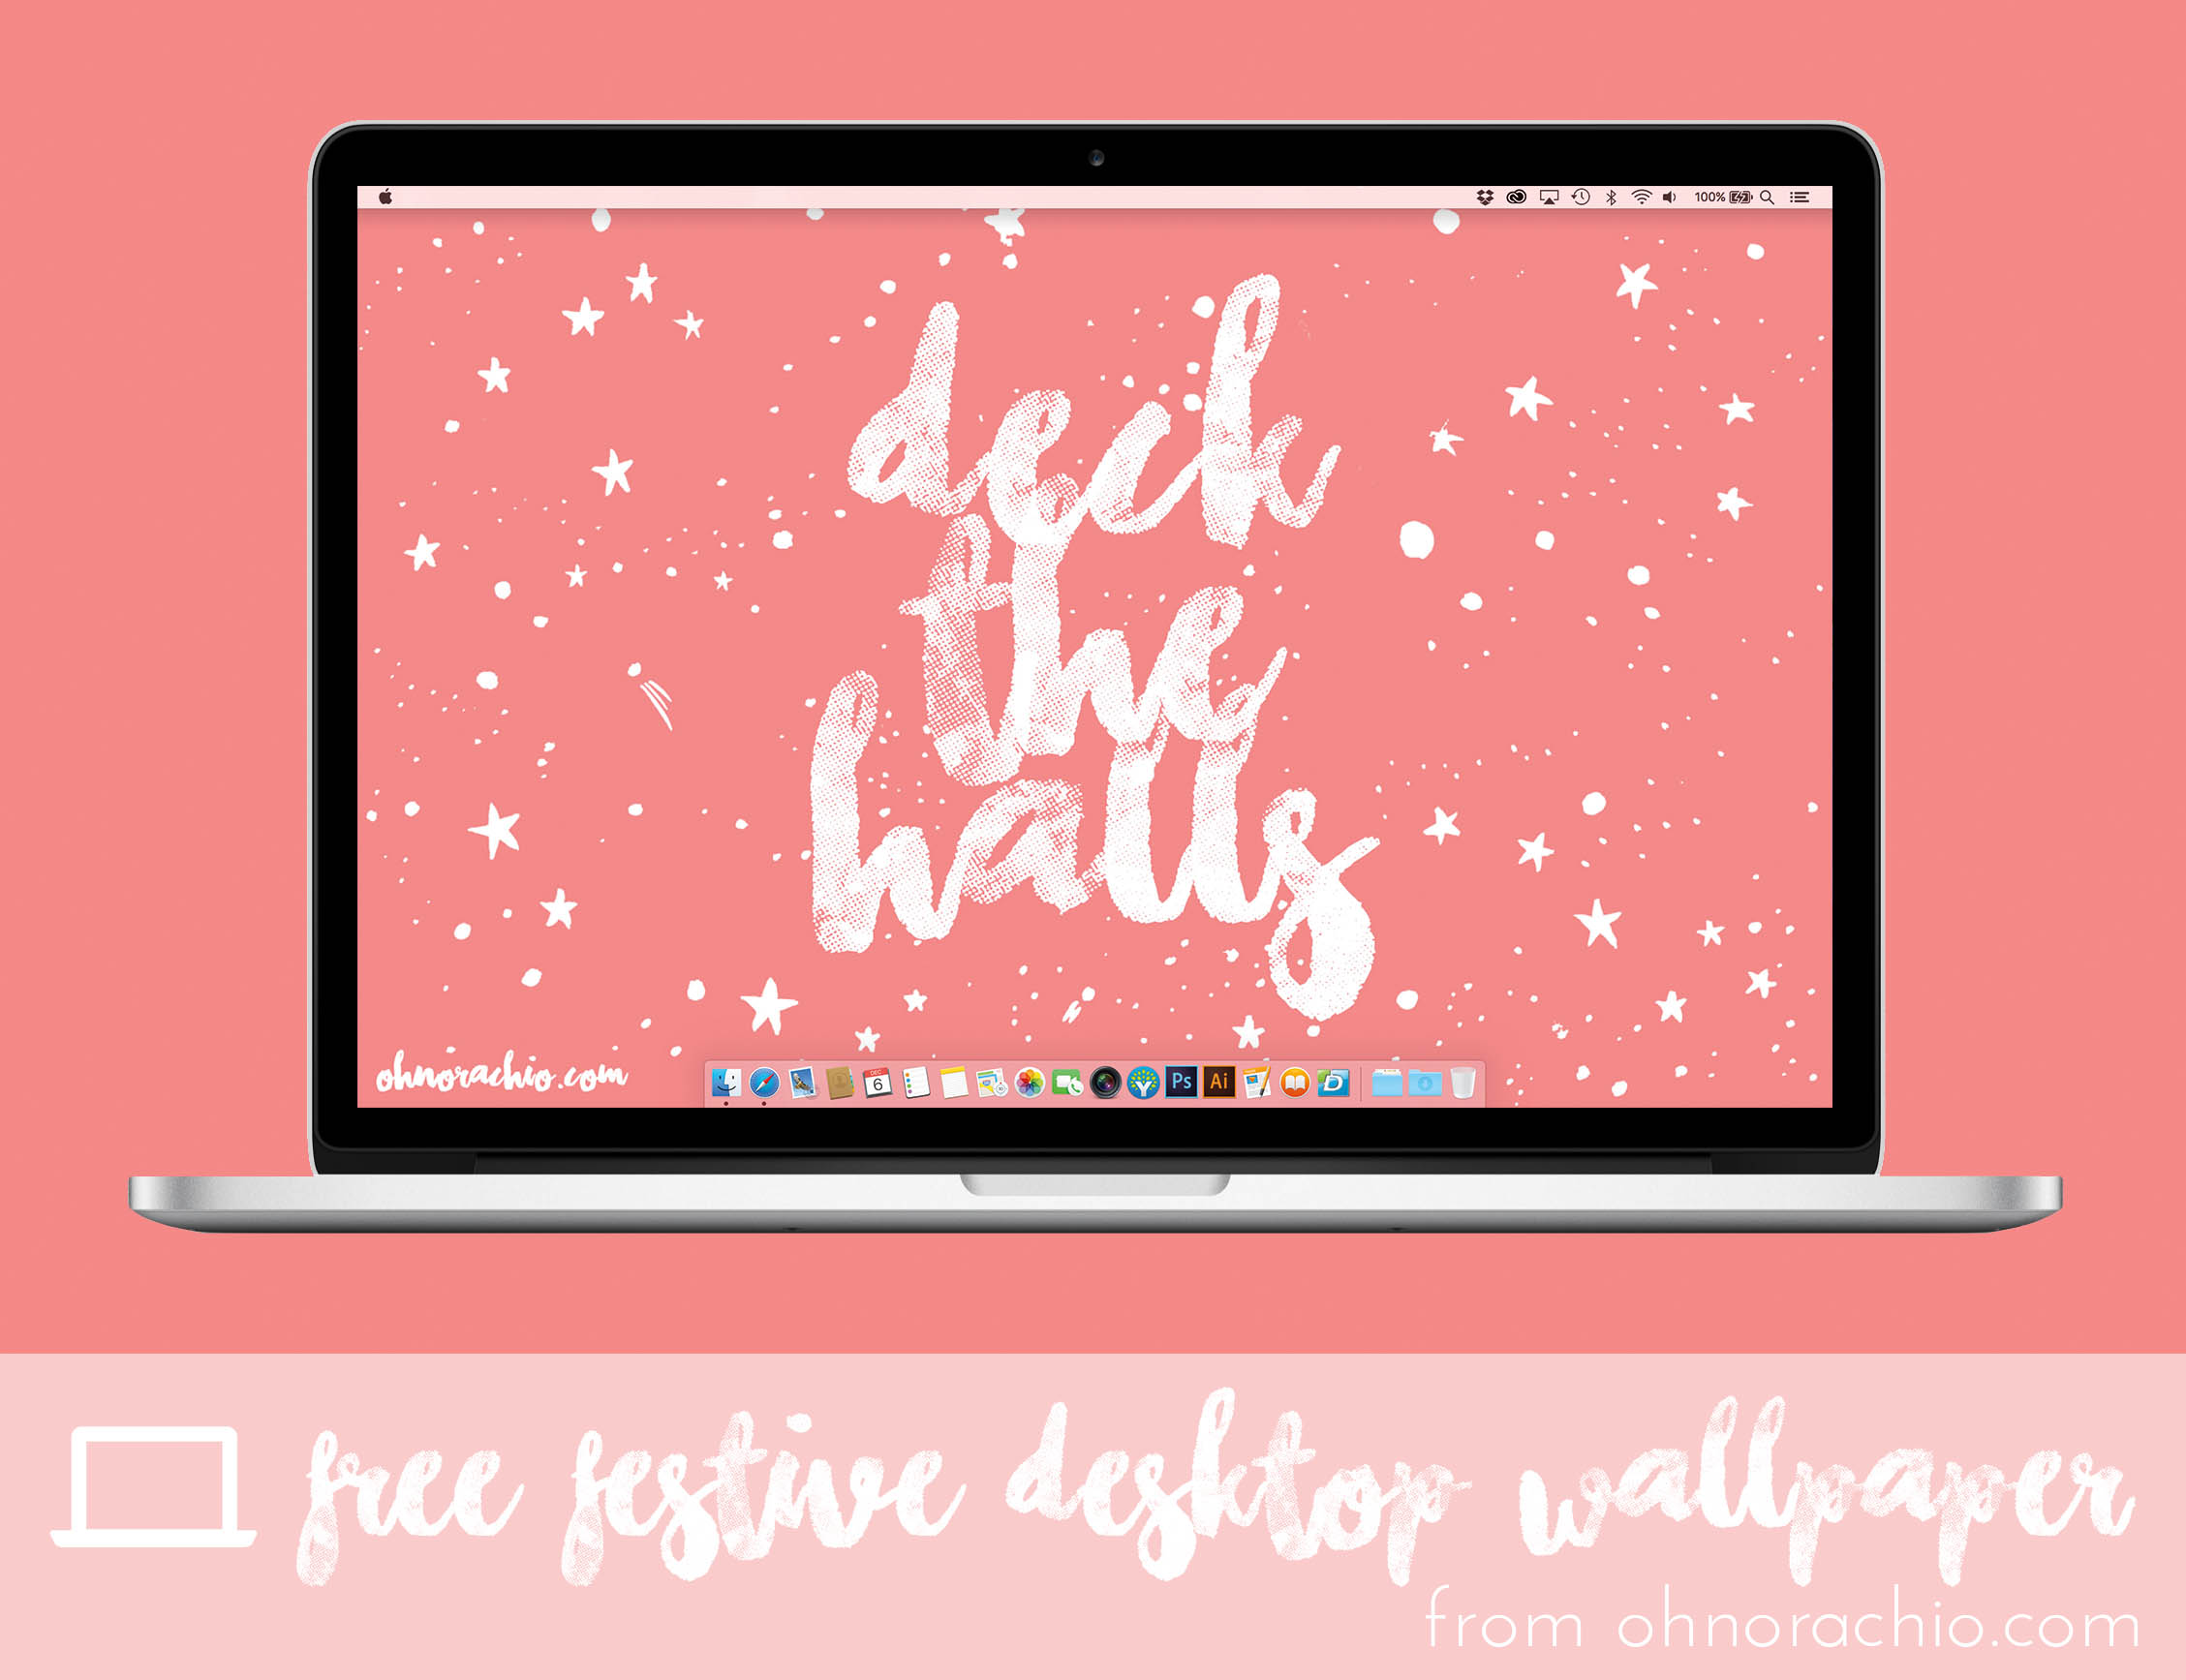 'DECK THE HALLS' desktop download by OH NO Rachio!